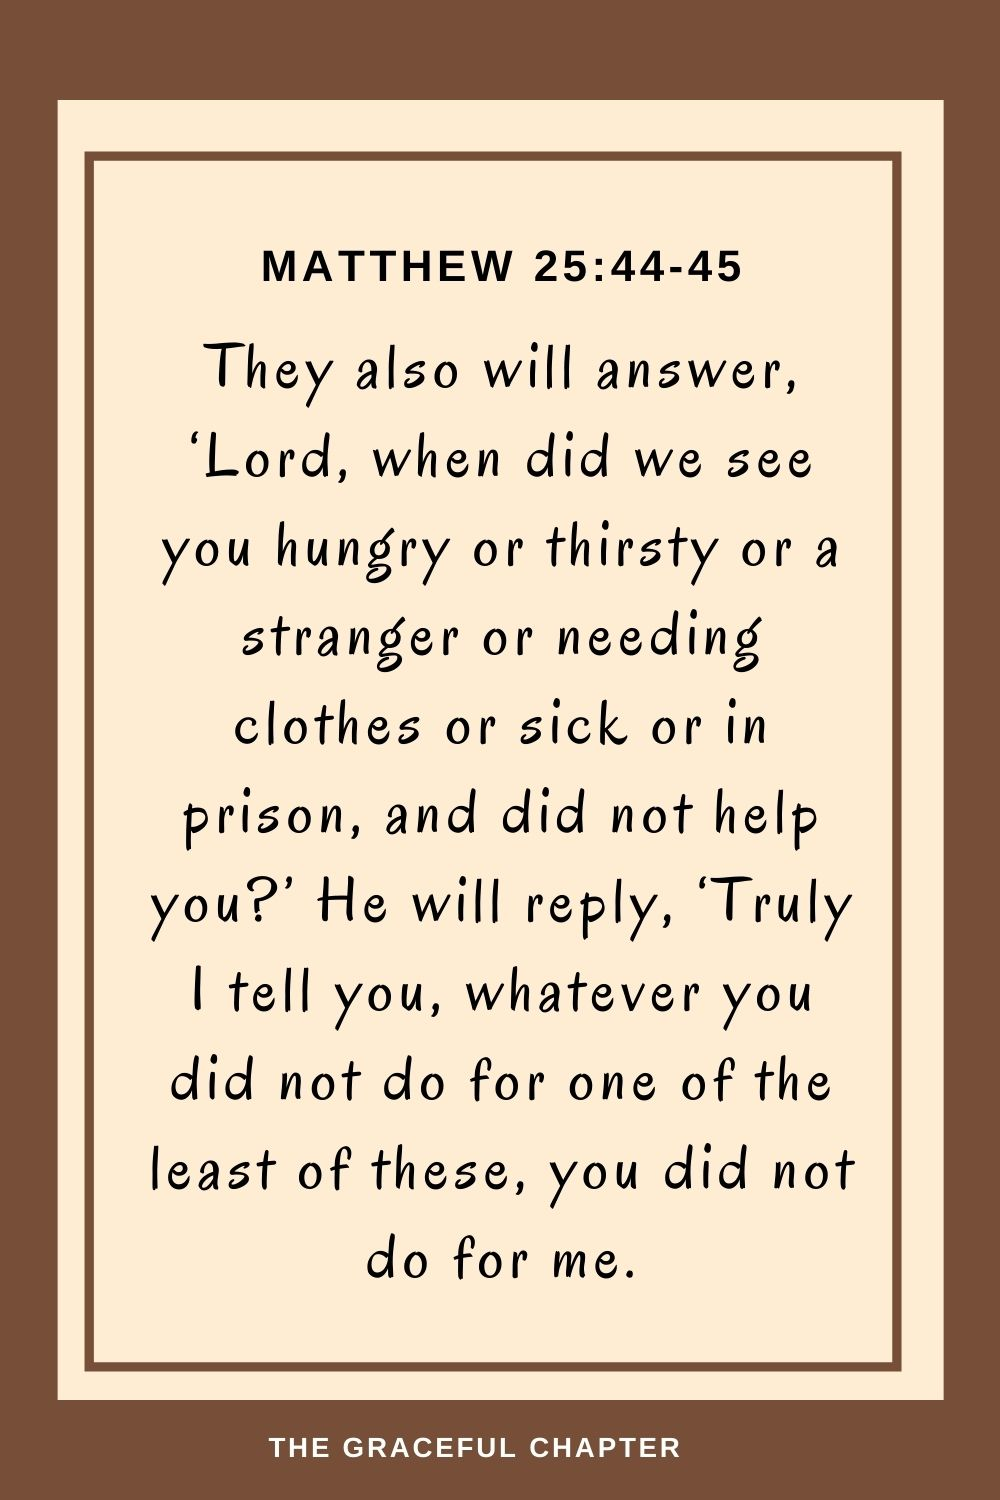 They also will answer, 'Lord, when did we see you hungry or thirsty or a stranger or needing clothes or sick or in prison, and did not help you?' He will reply, 'Truly I tell you, whatever you did not do for one of the least of these, you did not do for me. Matthew 25:44-45